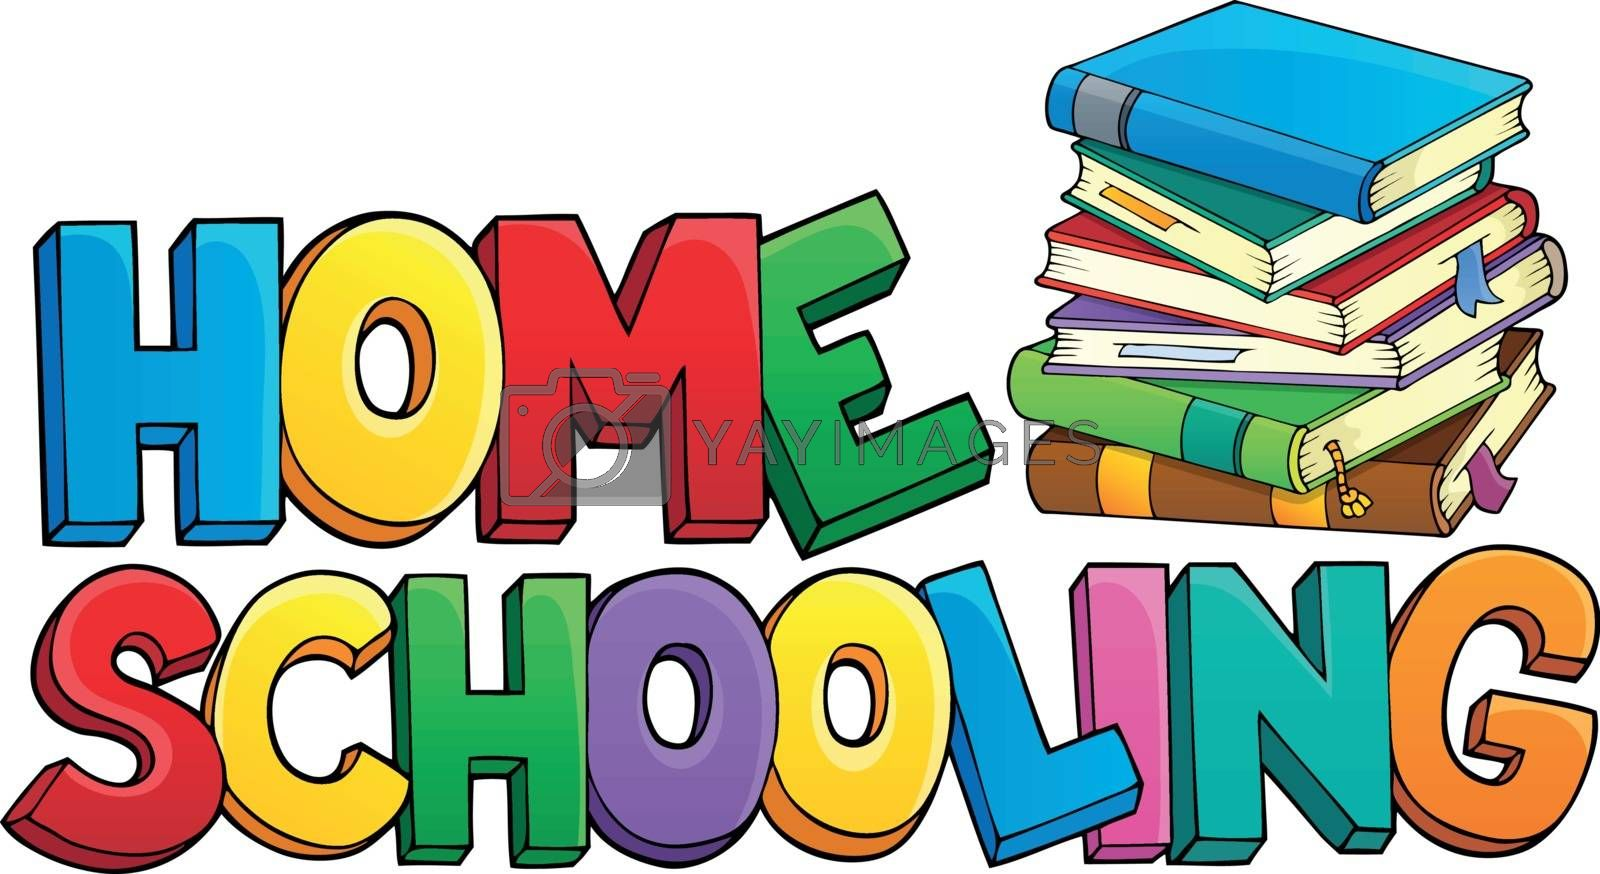 Home schooling theme sign 1 - eps10 vector illustration.